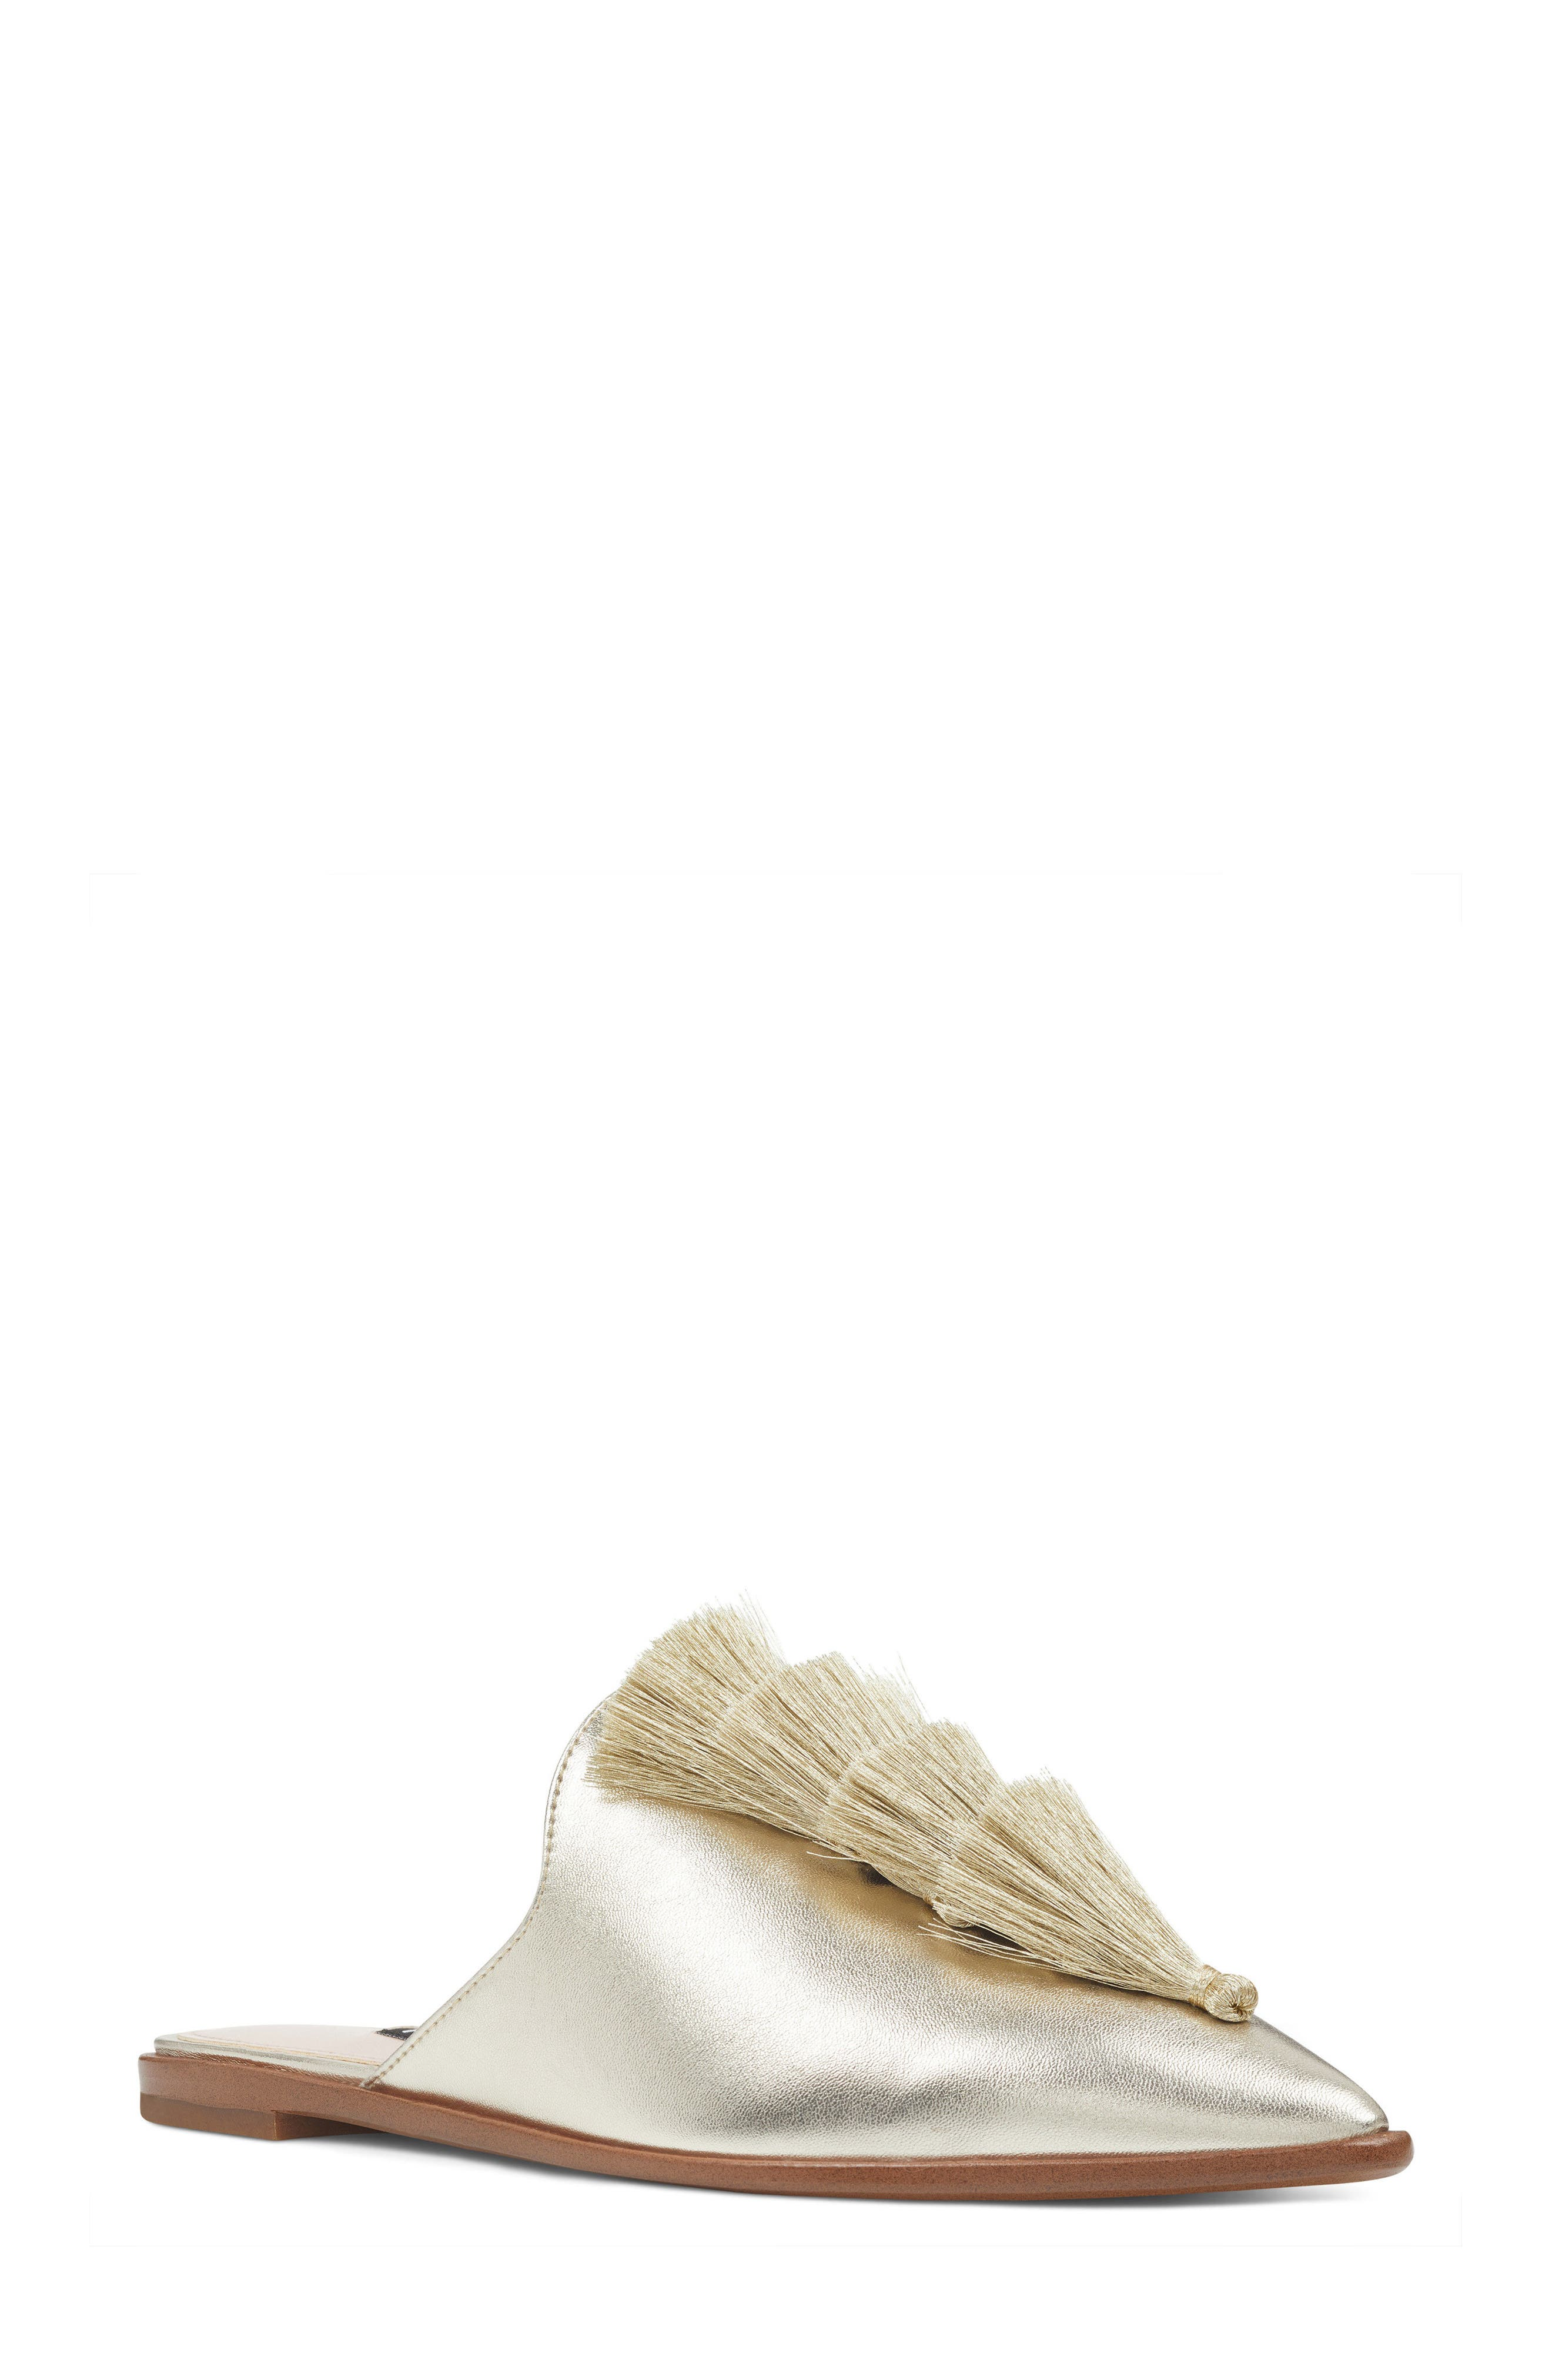 Ollial Fringed Loafer Mule,                         Main,                         color, Light Gold Leather